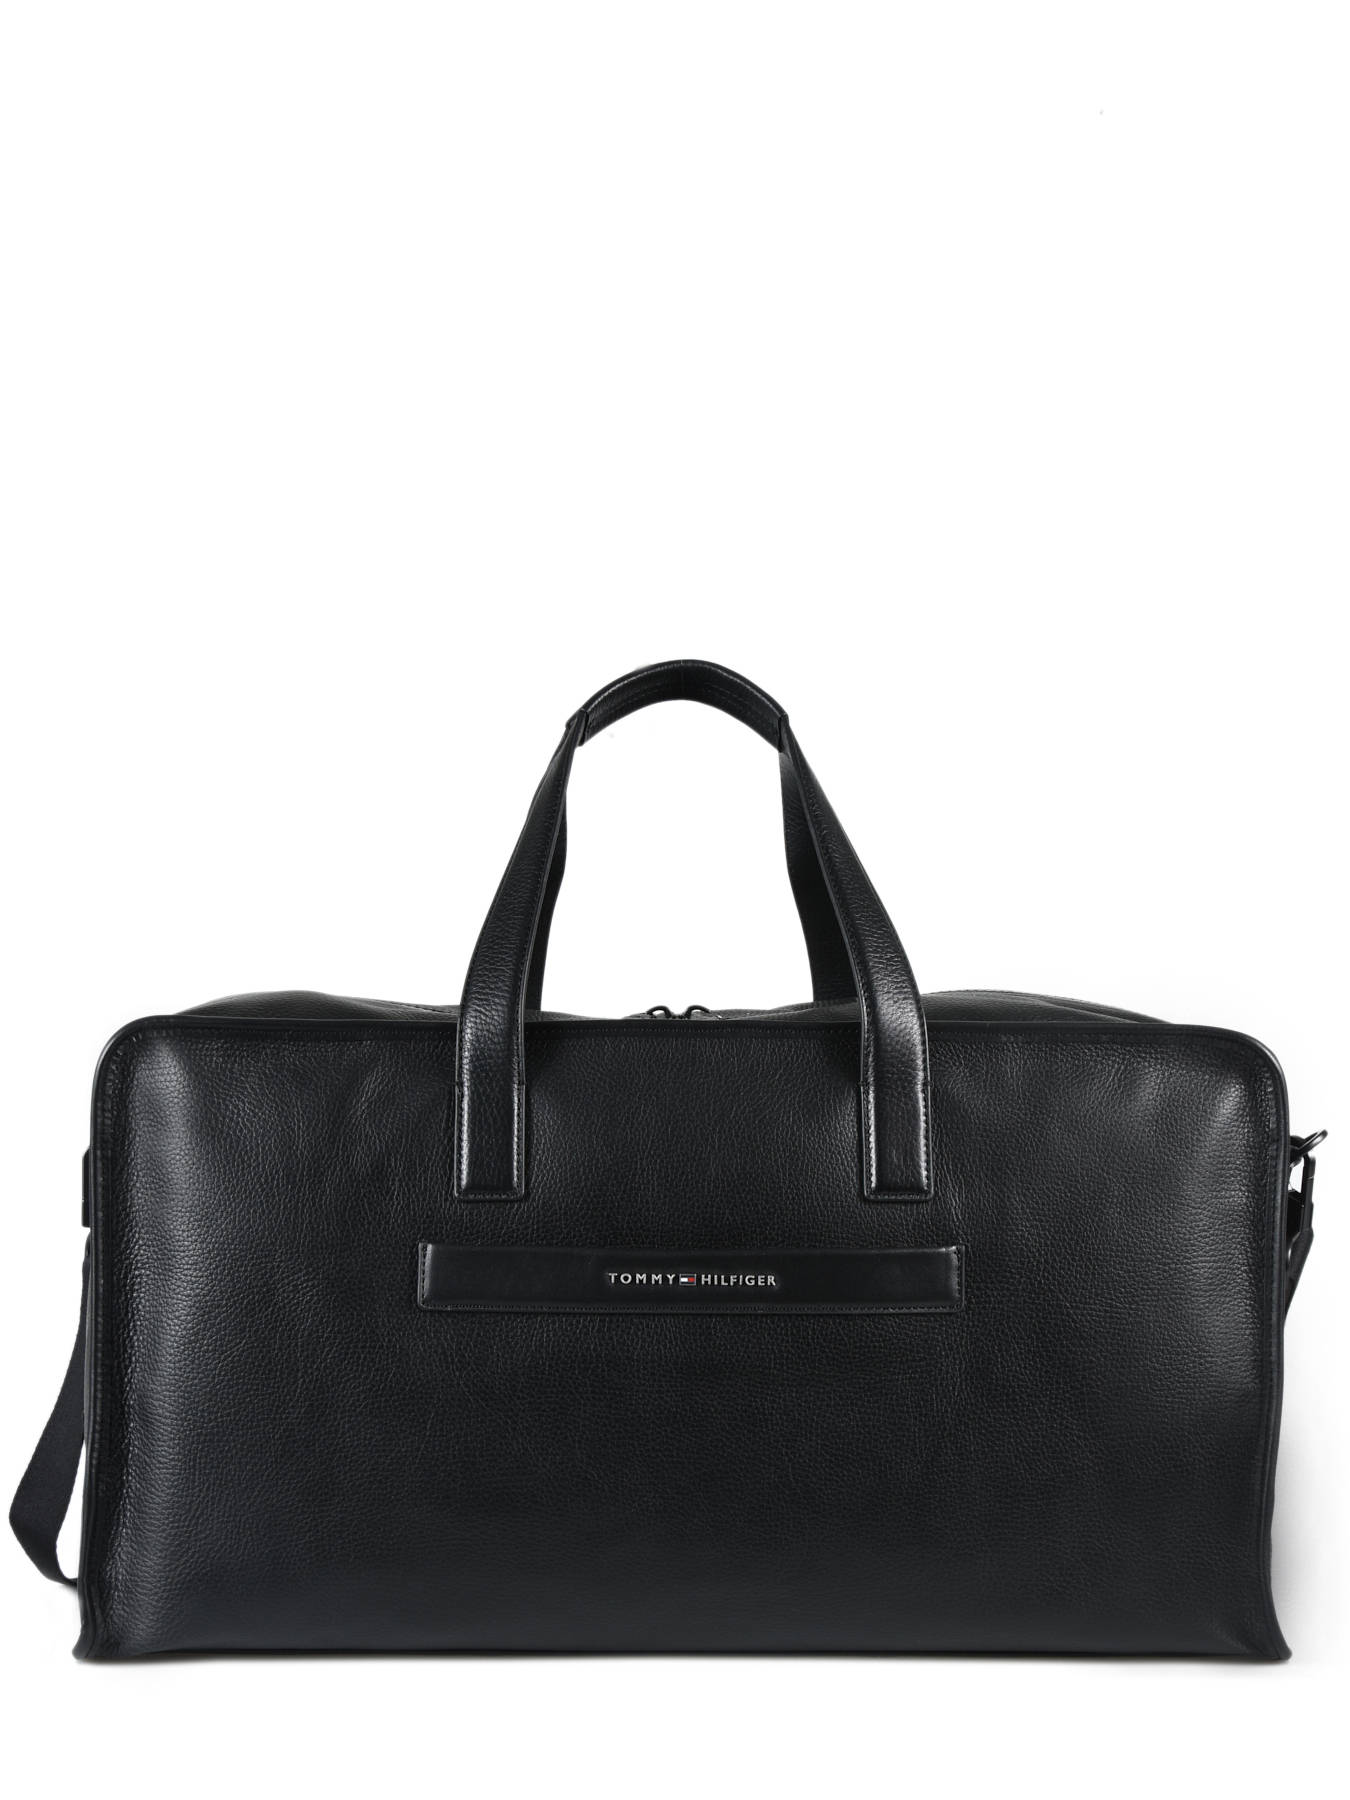 acfd17809e66 ... Sac De Voyage Elevated Cuir Elevated Tommy hilfiger Noir elevated  AM04314 ...